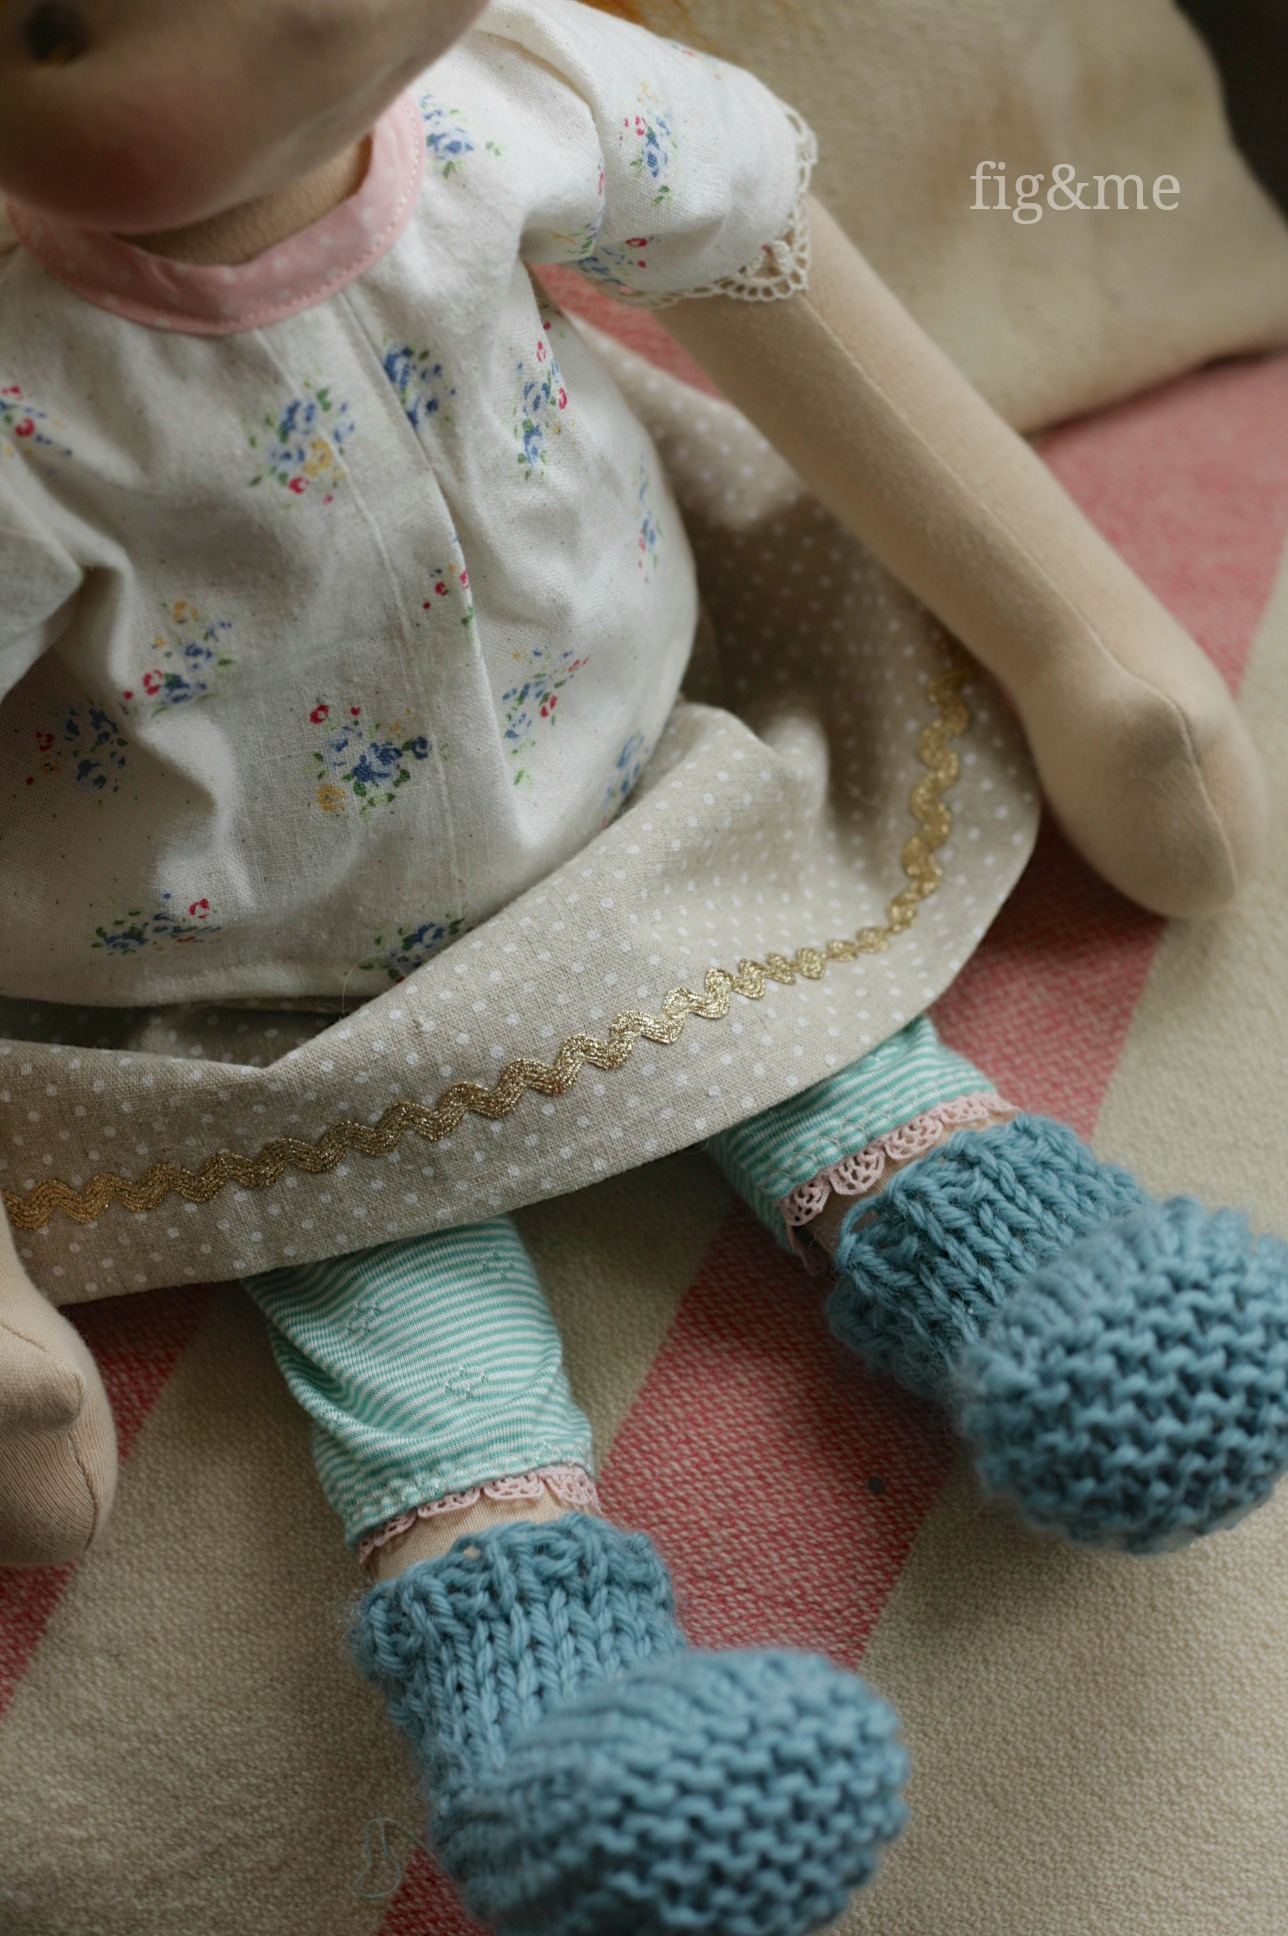 Knitting pattern for Sock Booties, by Fig and Me.